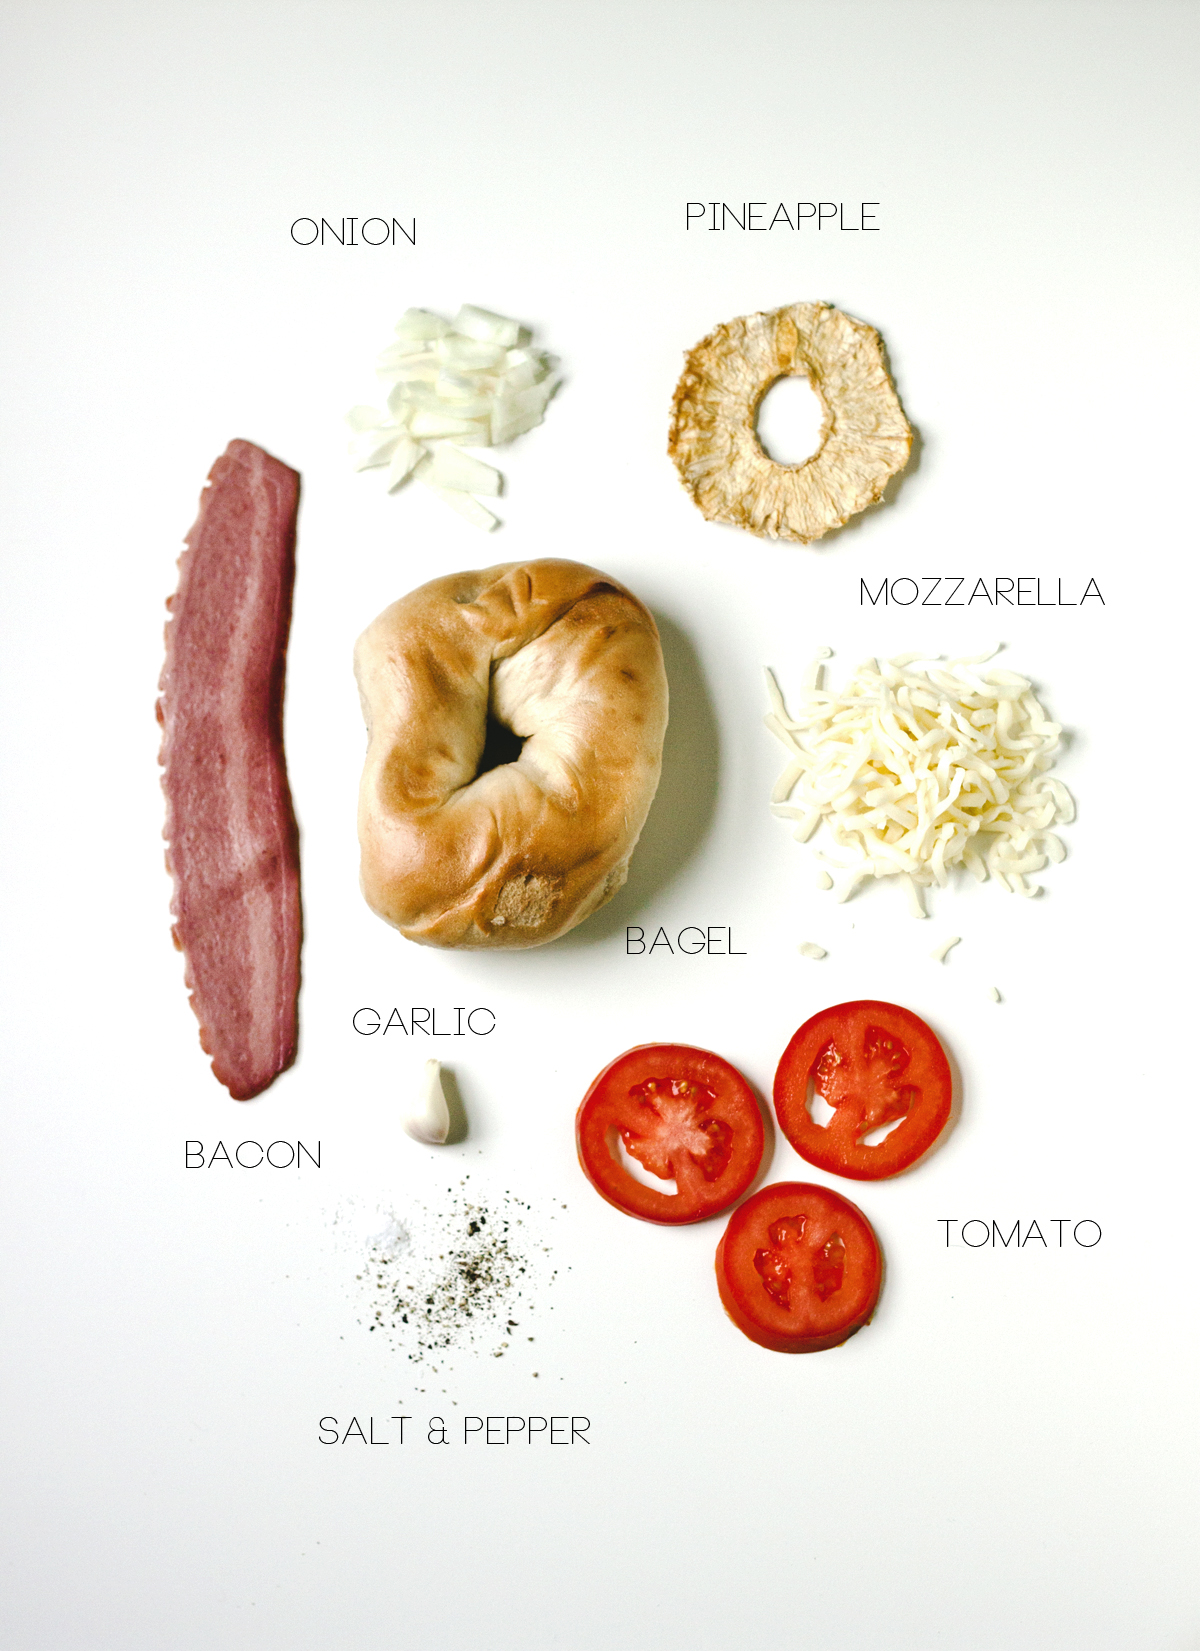 1304-pizza-bagel-ingredients.jpg